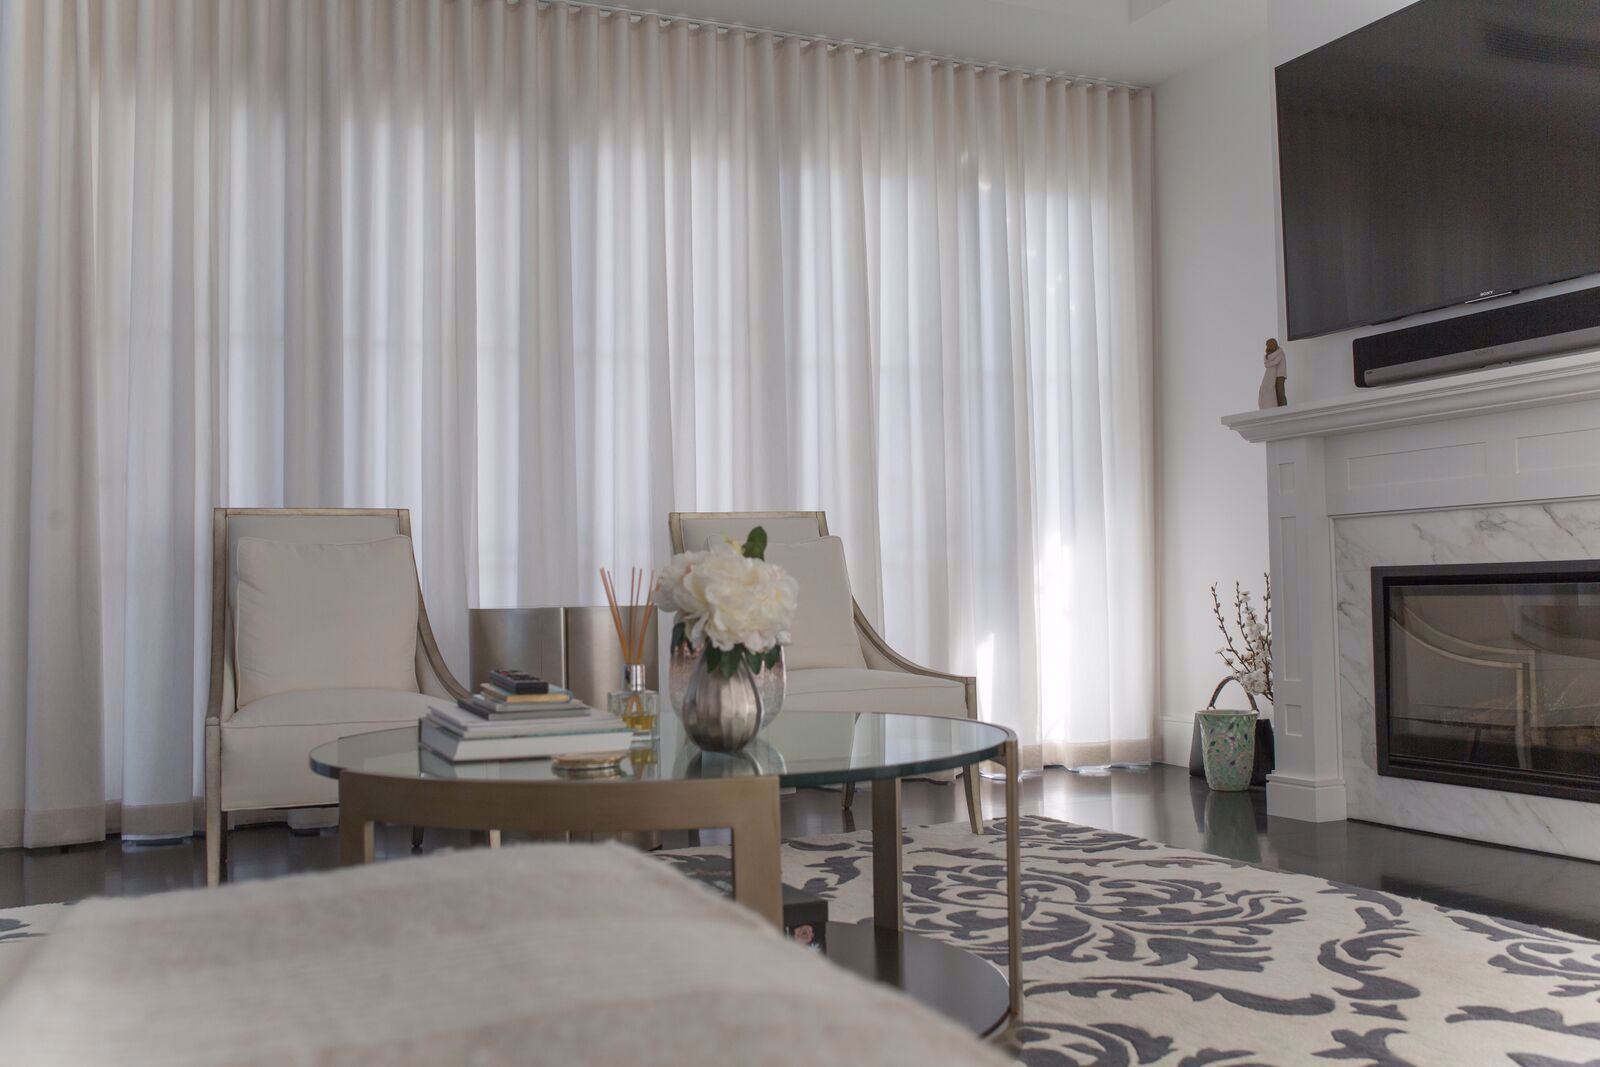 Merewether Home - Curtains & Blinds